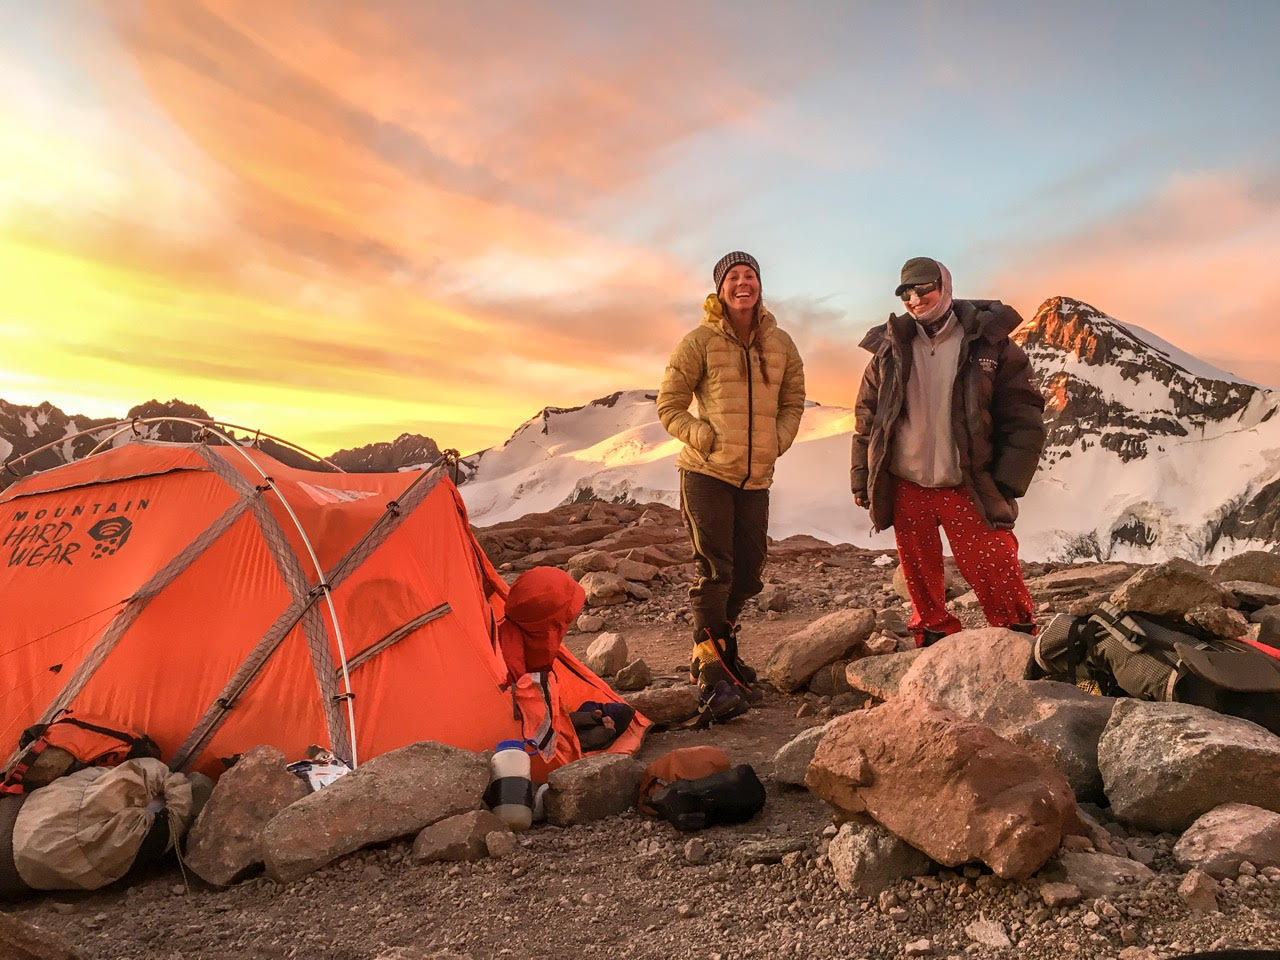 Happiness is only real when shared - particularly during a sufferfest mission in the mountains.  (Aconcagua Ruta Normal, Camp I)